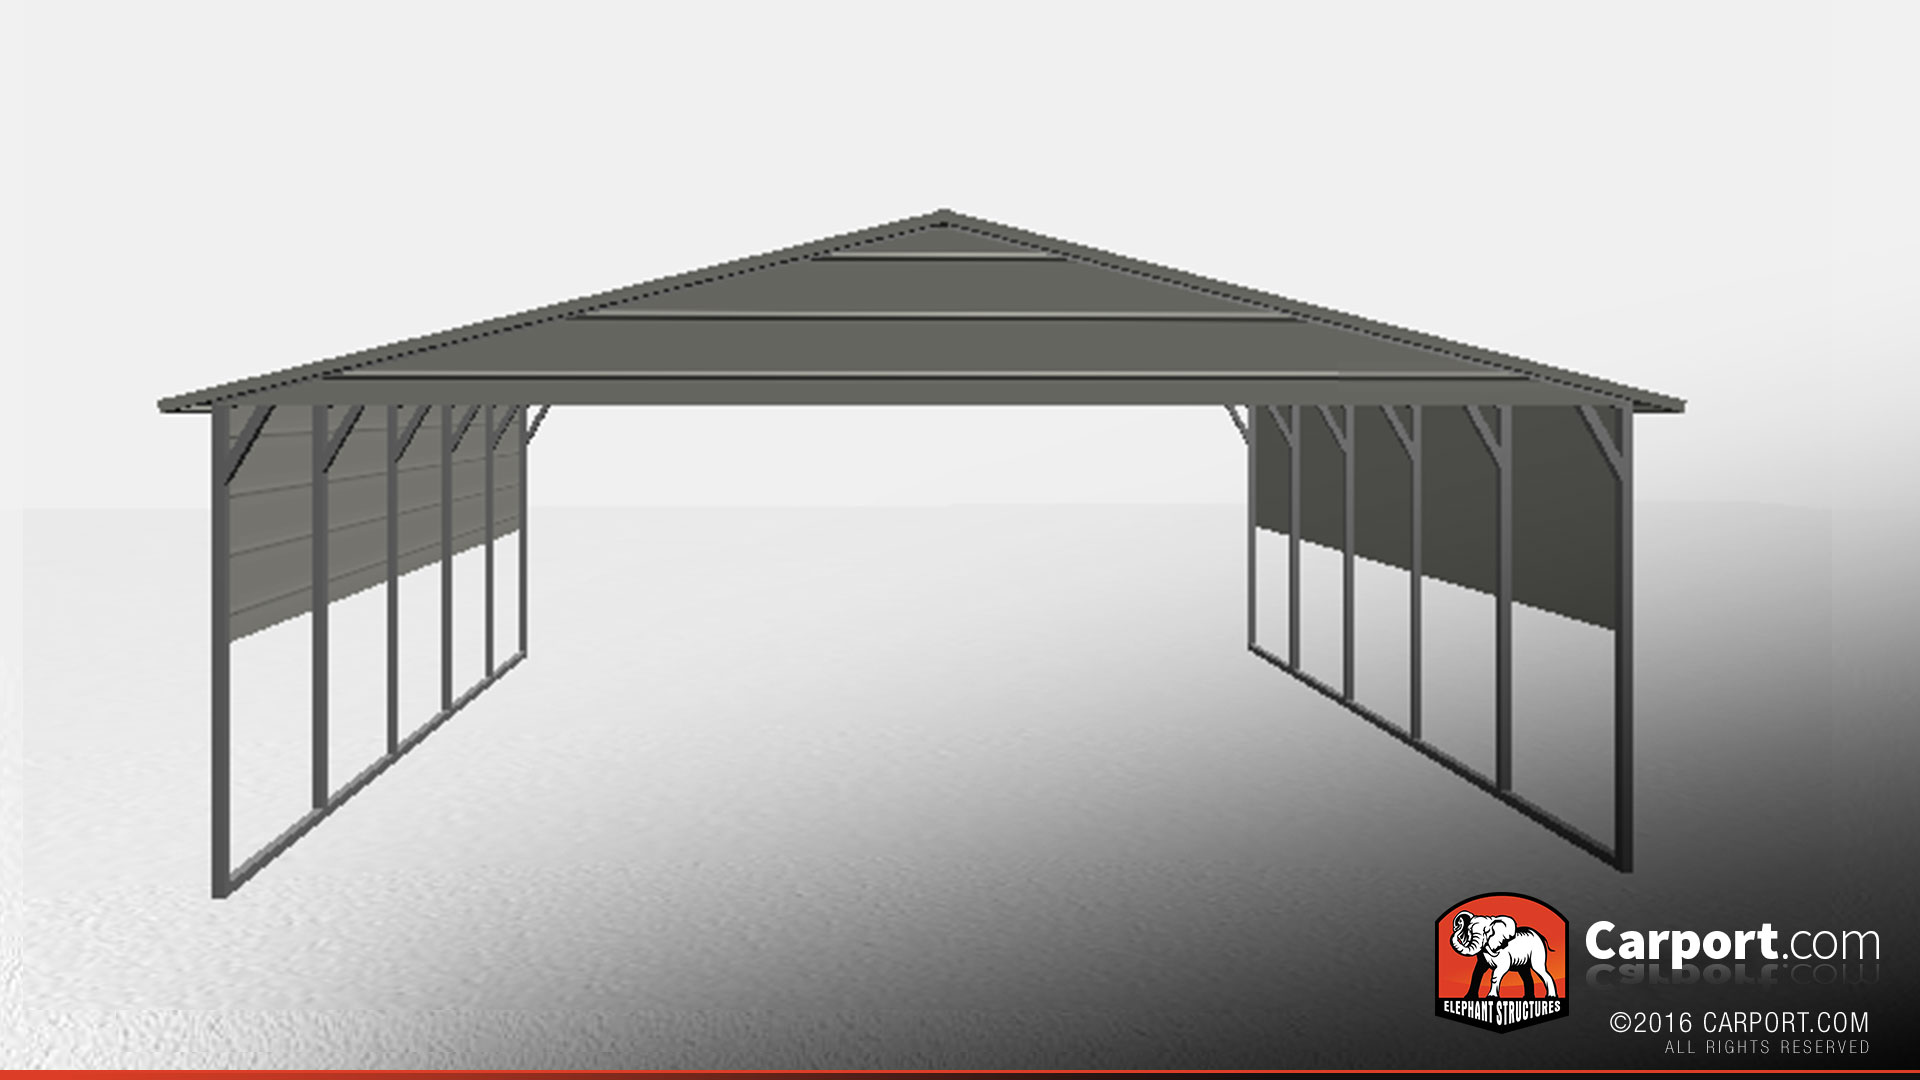 Shelter Build A Car : Boxed eave double wide carport car shelter